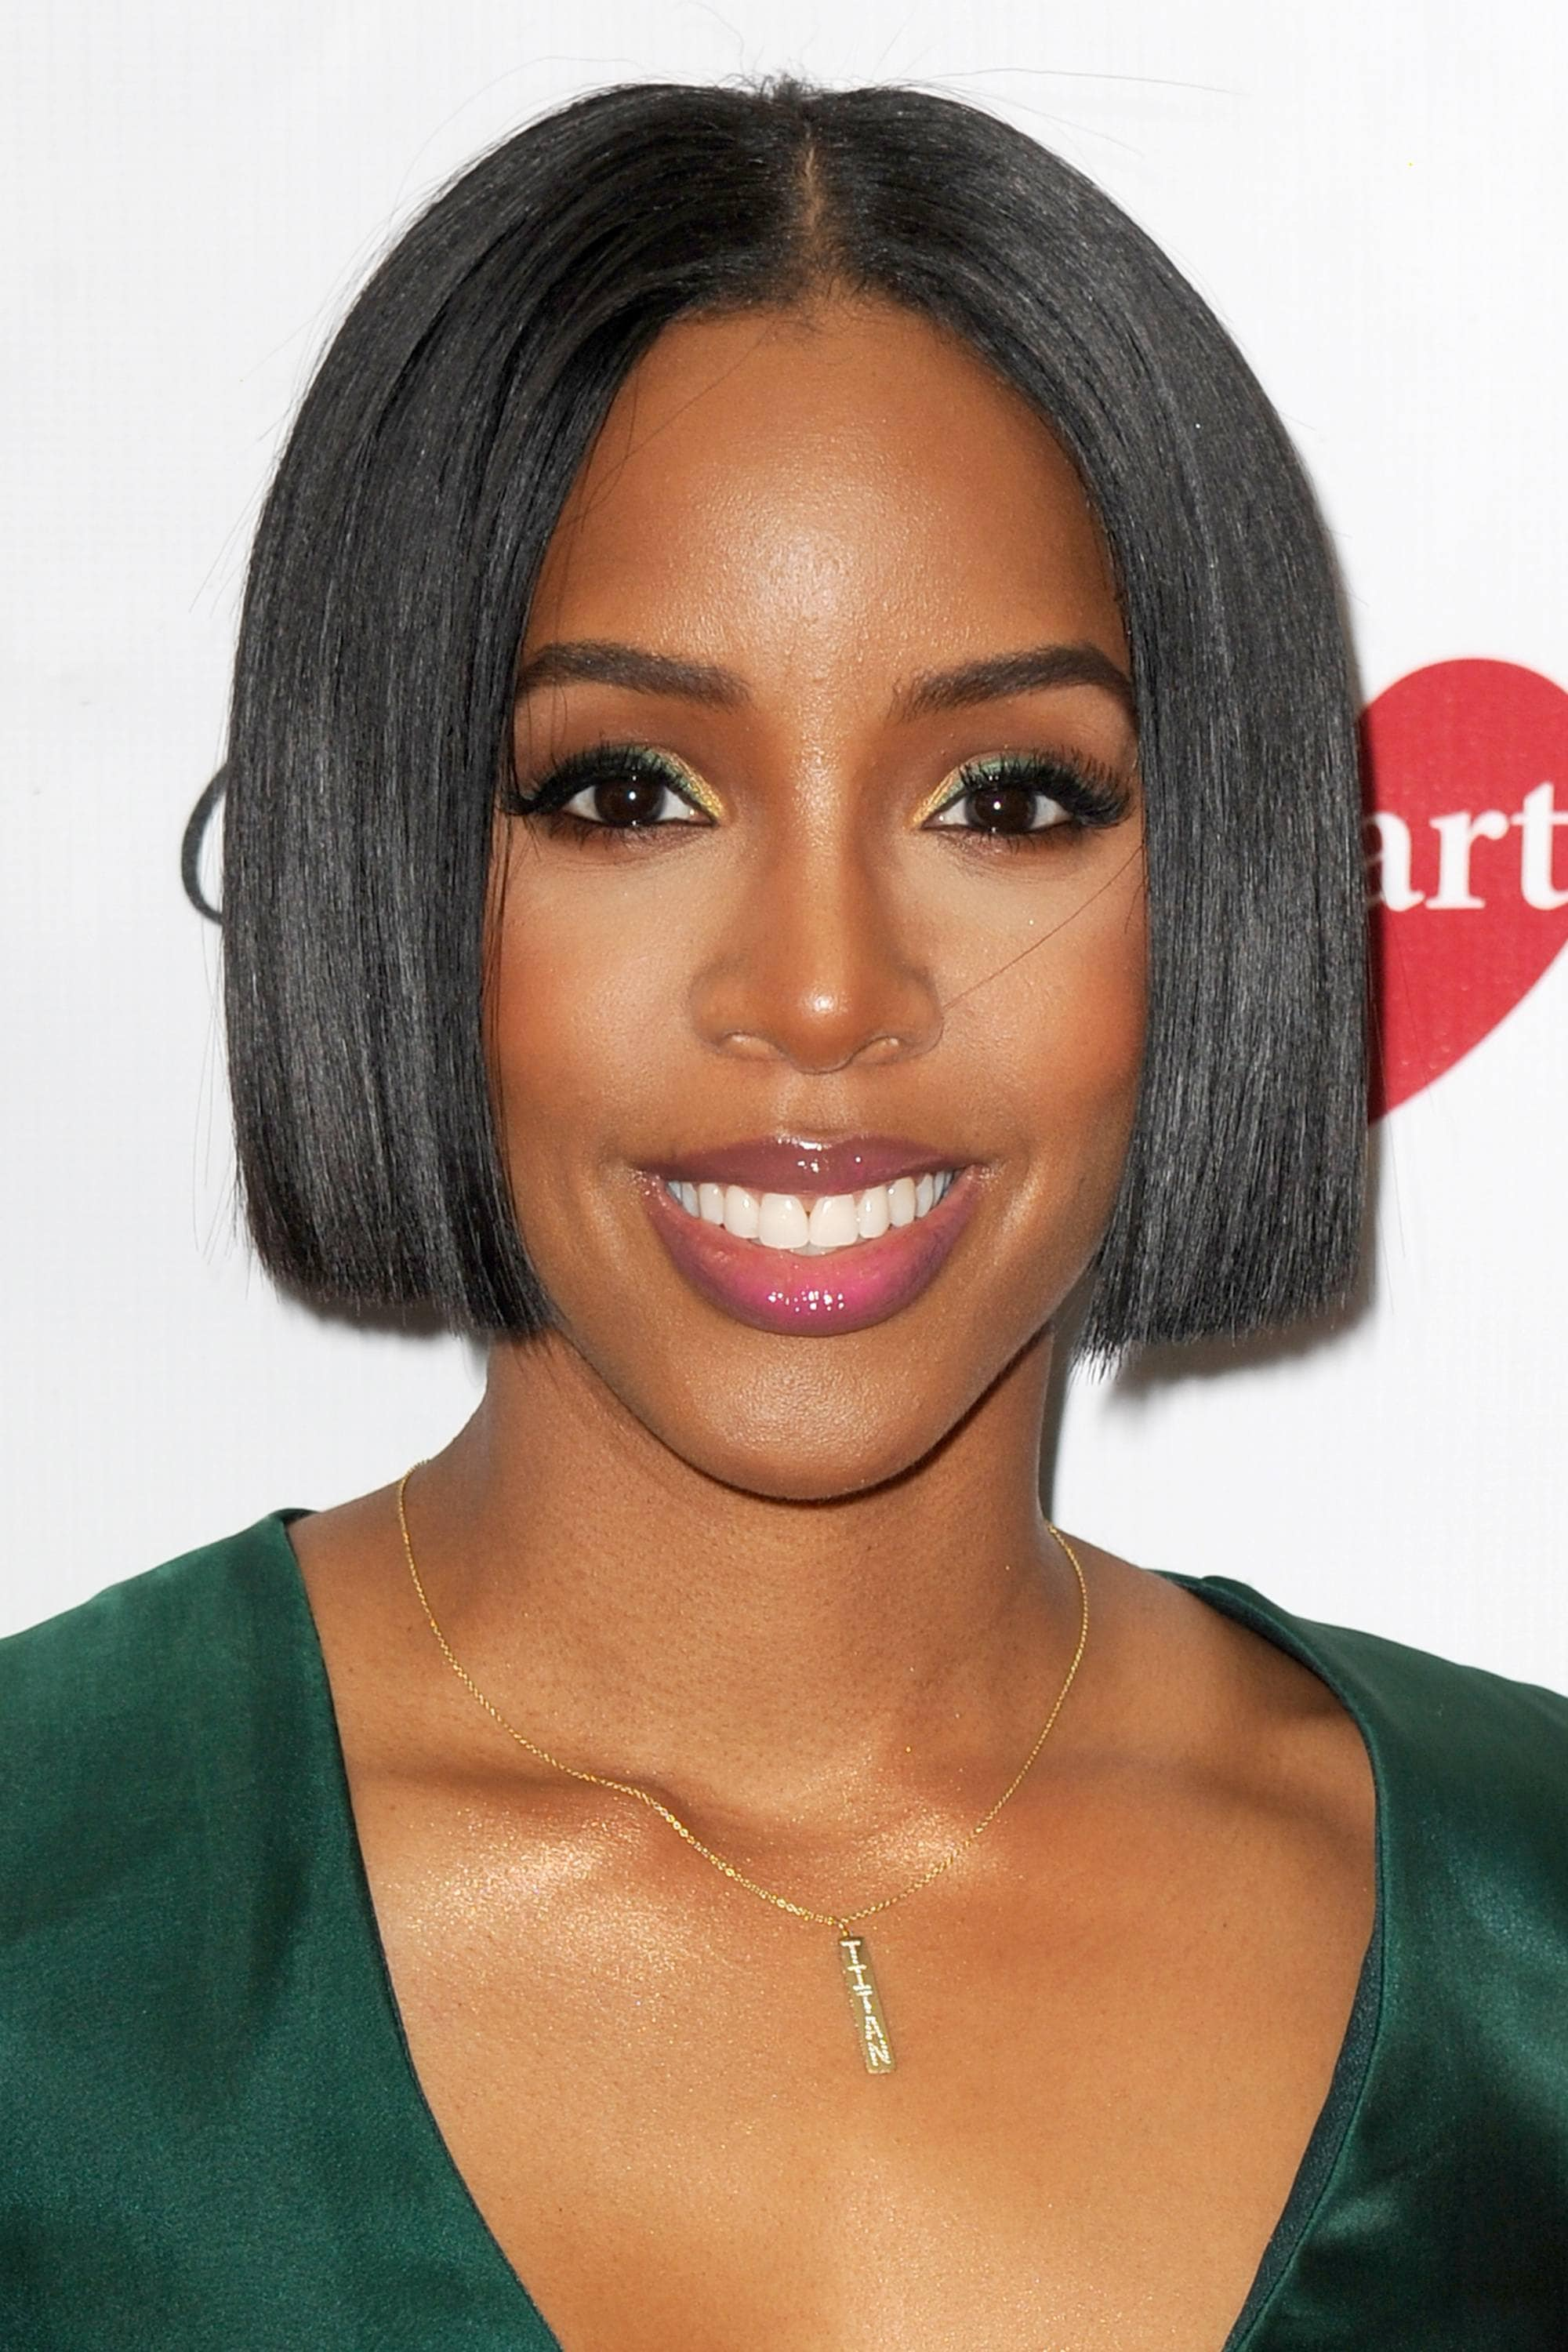 Black bob hairstyles Kelly Rowland in a green dress with her black hair cut into a short sleek chin-length bob